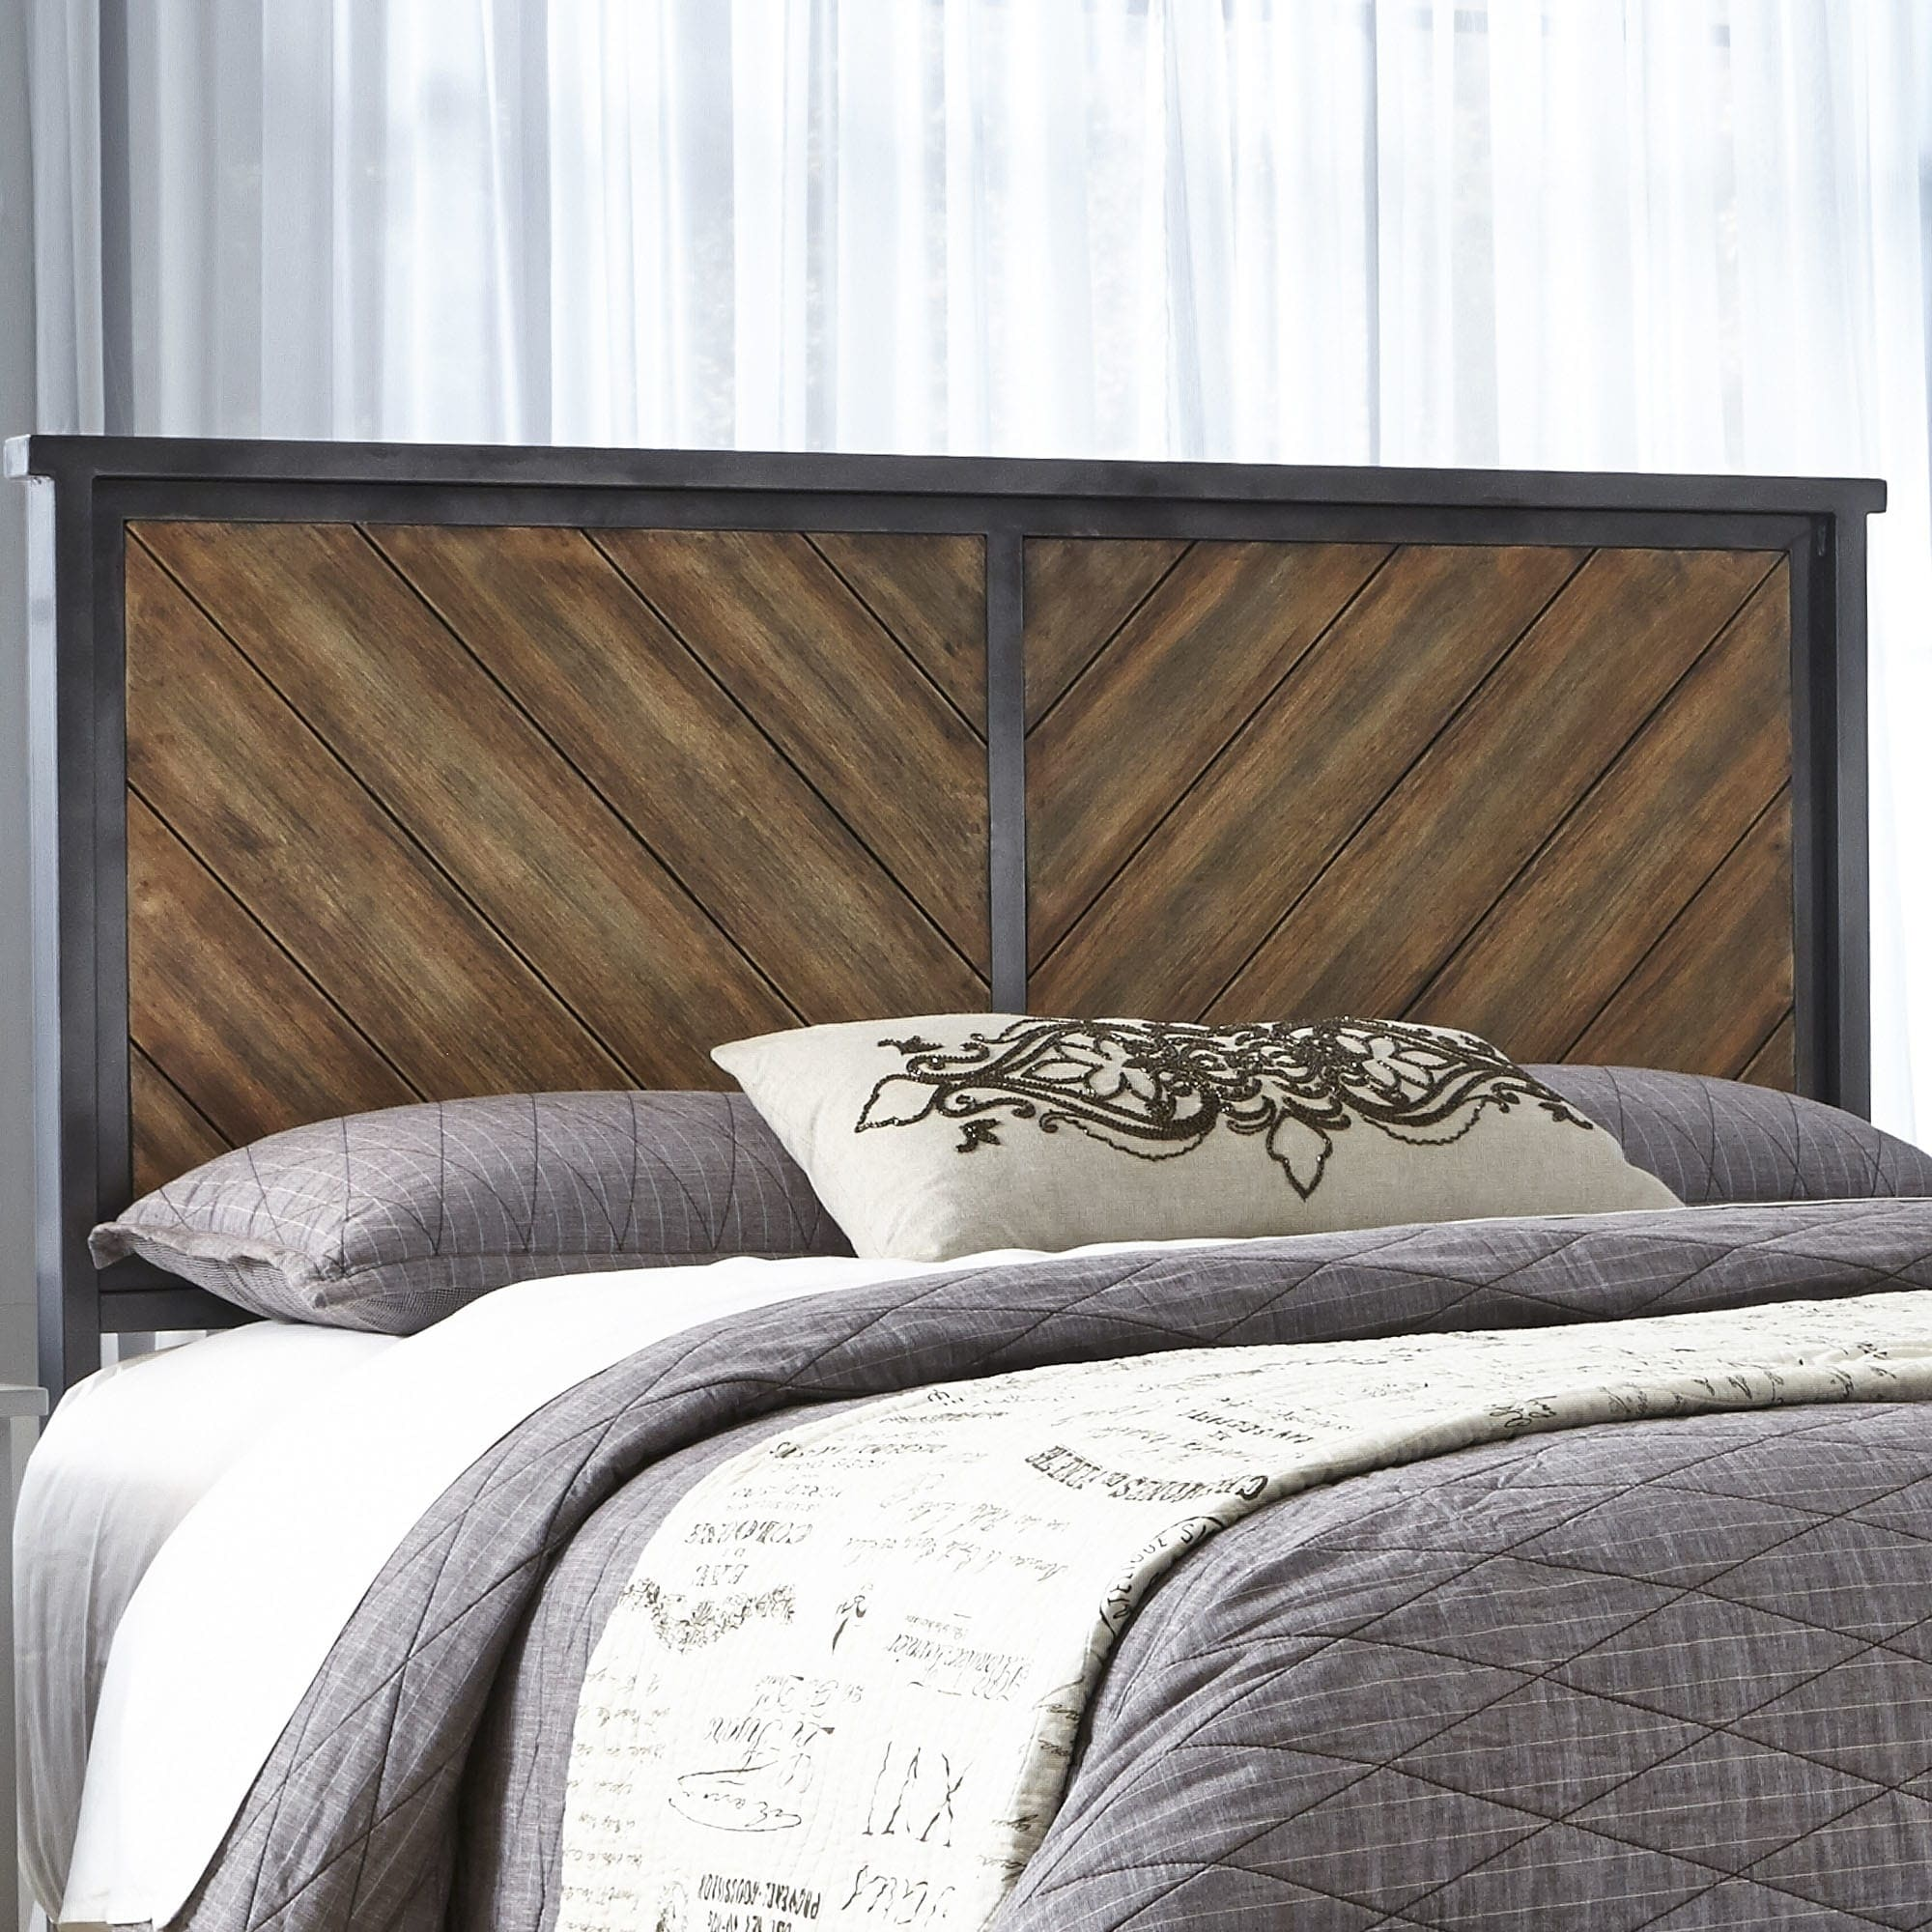 Fashion Bed Group Braden Metal Headboard with Reclaimed W...